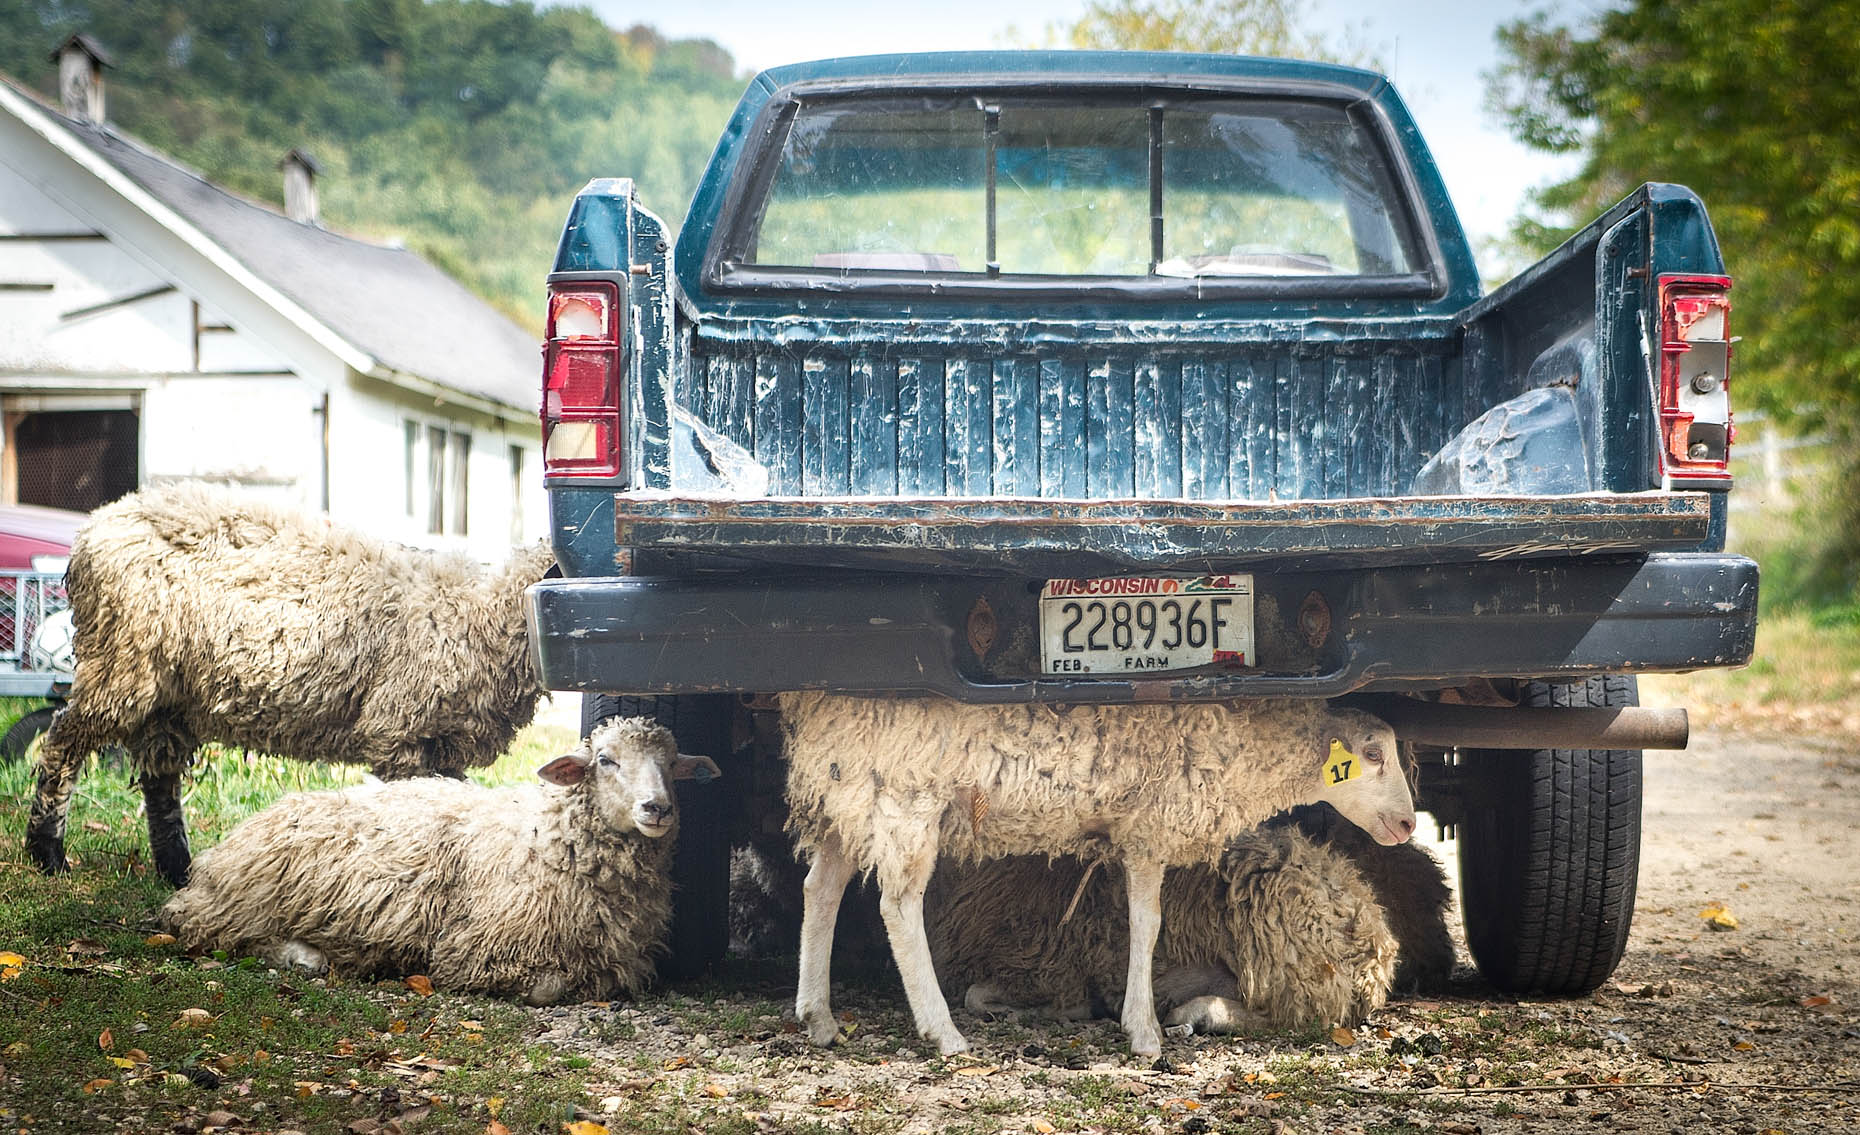 Sheep and Truck